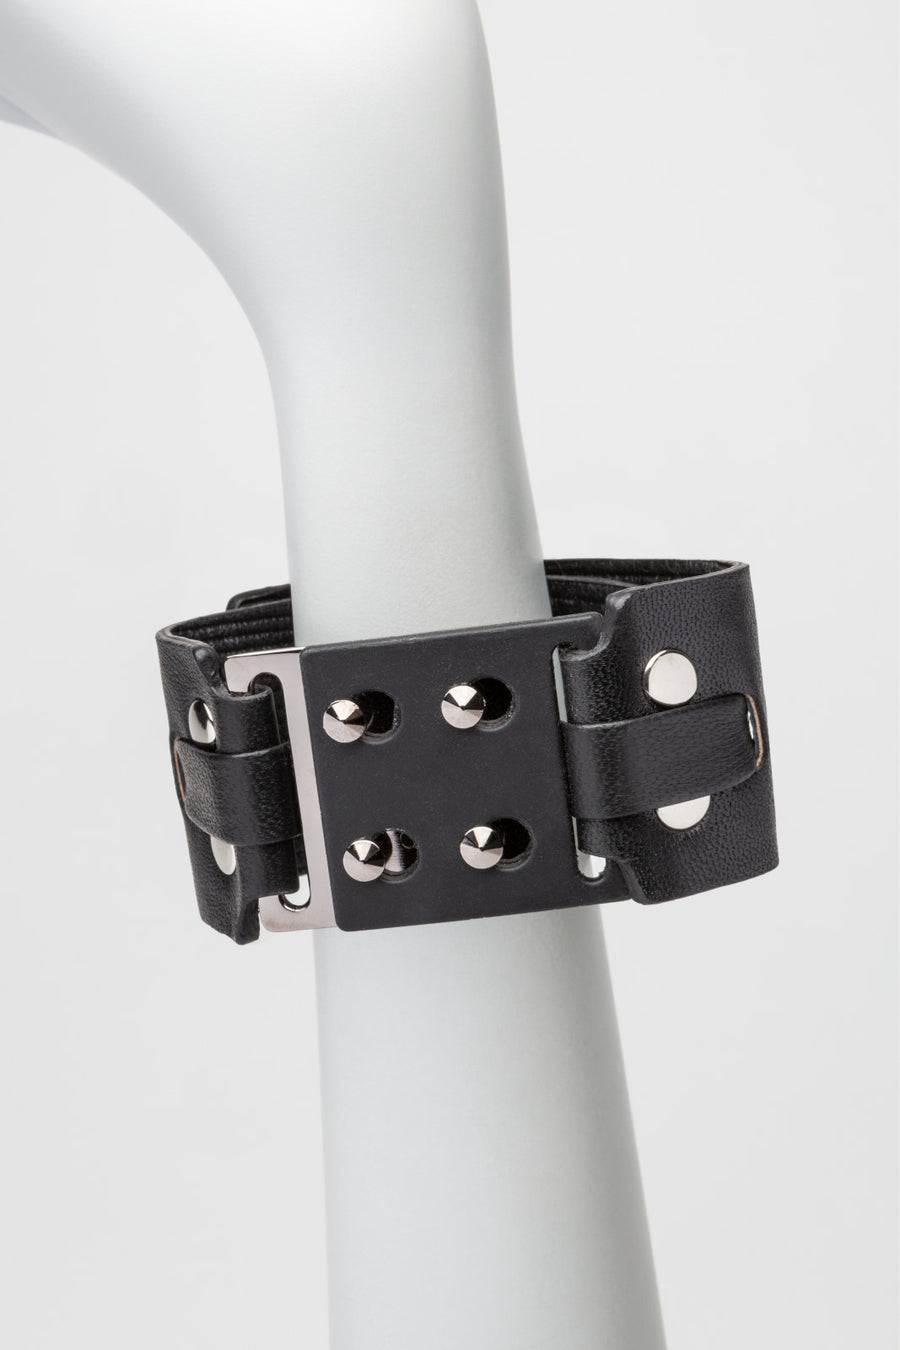 leather + metal cuff, with snap closure.